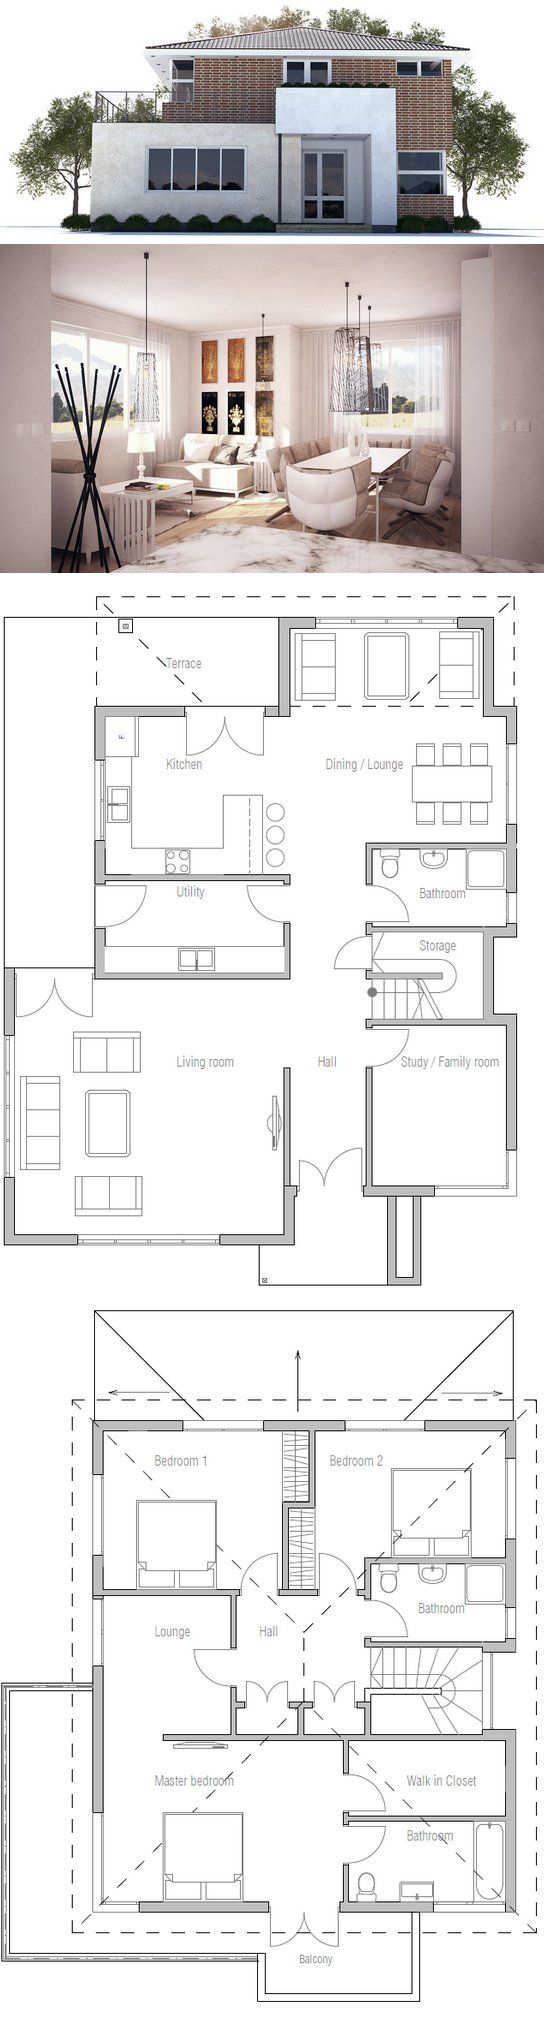 Modern House Plan with three bedrooms. large living room, separate dining area + lounge. Floor Plans from ConceptHome.com Modern Architecture